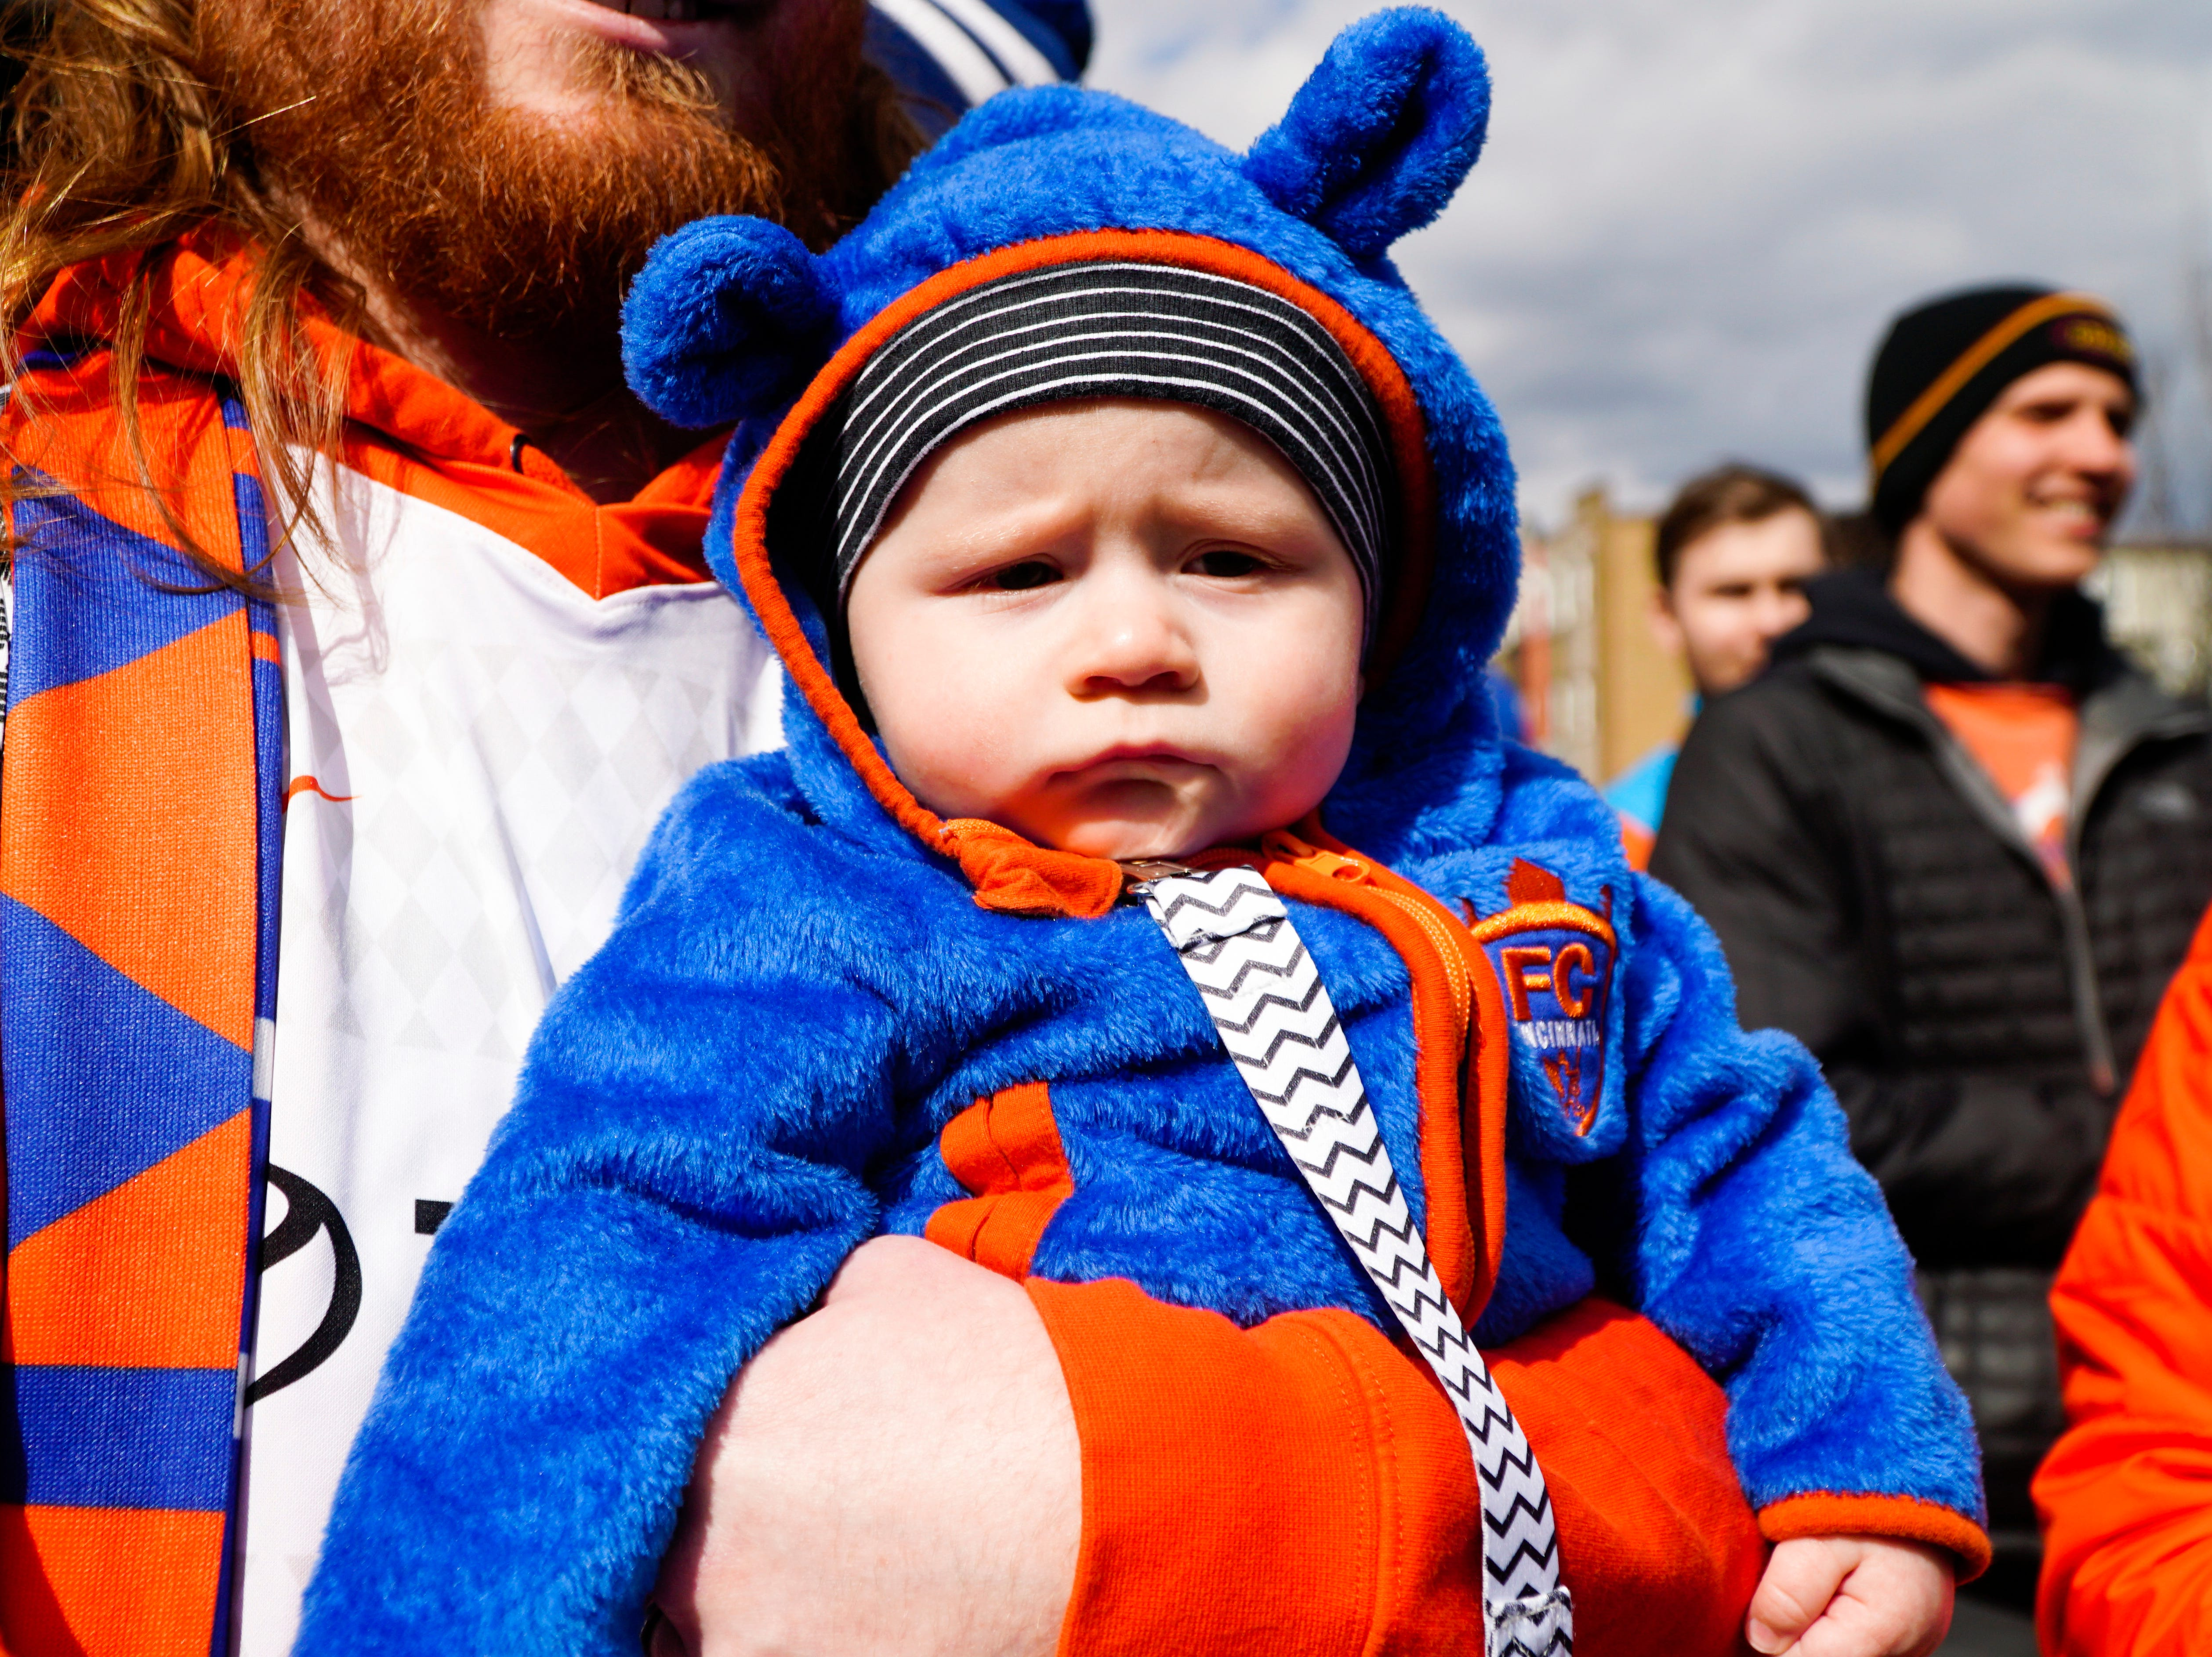 Ben James held his two month-old son Klay as FC Cincinnati fans streamed towards Nipper Stadium, March 17, 2019.